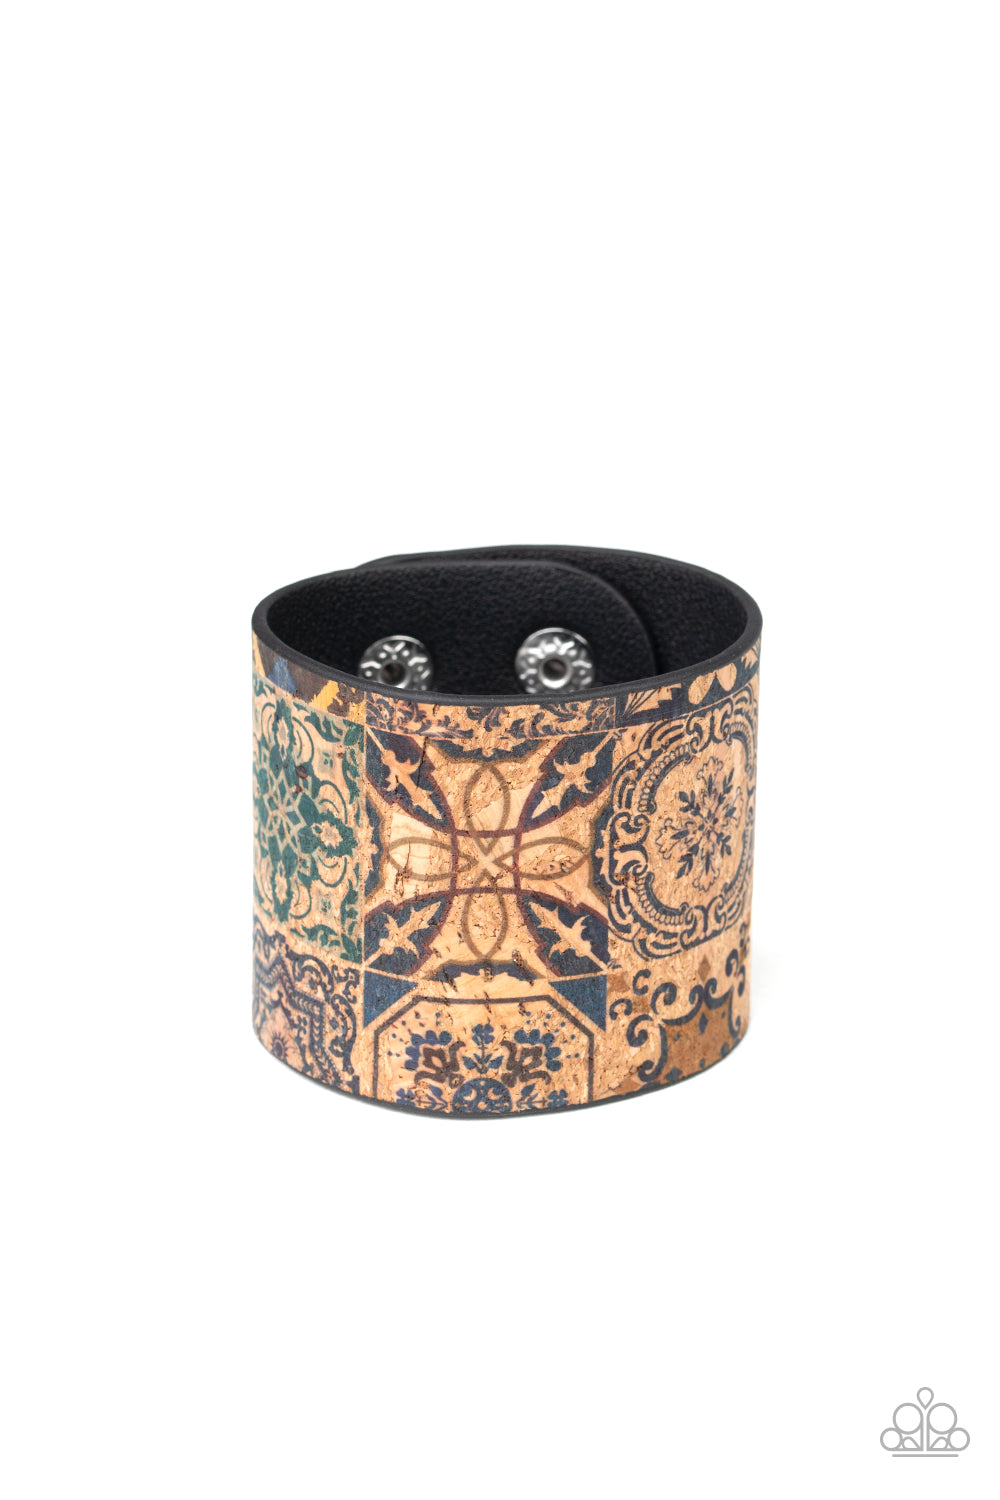 Paparazzi Accessories - Cork Culture - Multicolor Bracelet